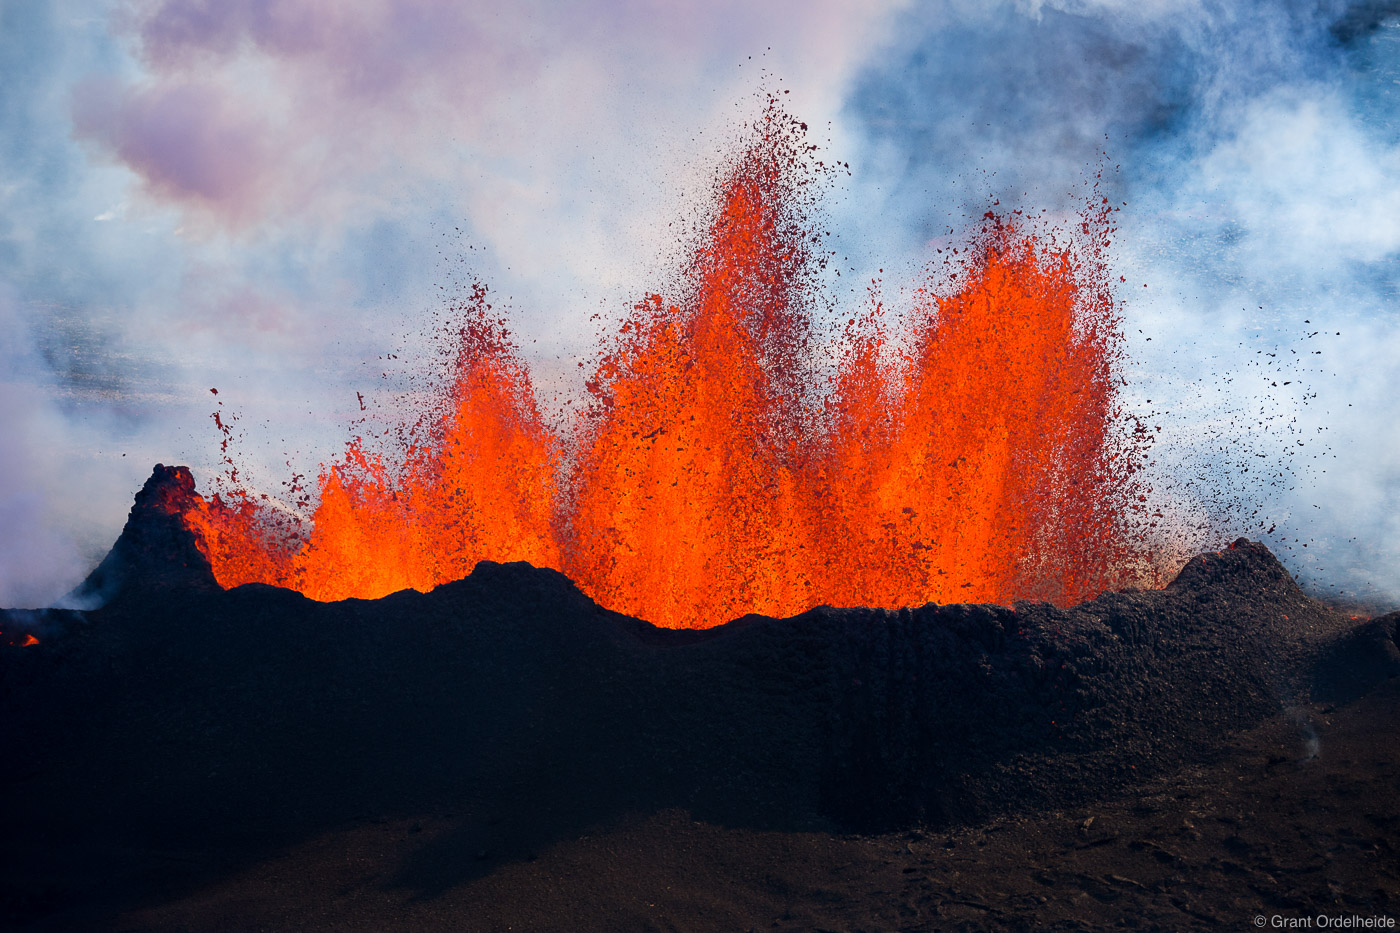 A massive lava eruption from a fissure near the Bardarbunga volcano in Iceland's Holuhraun lava field.